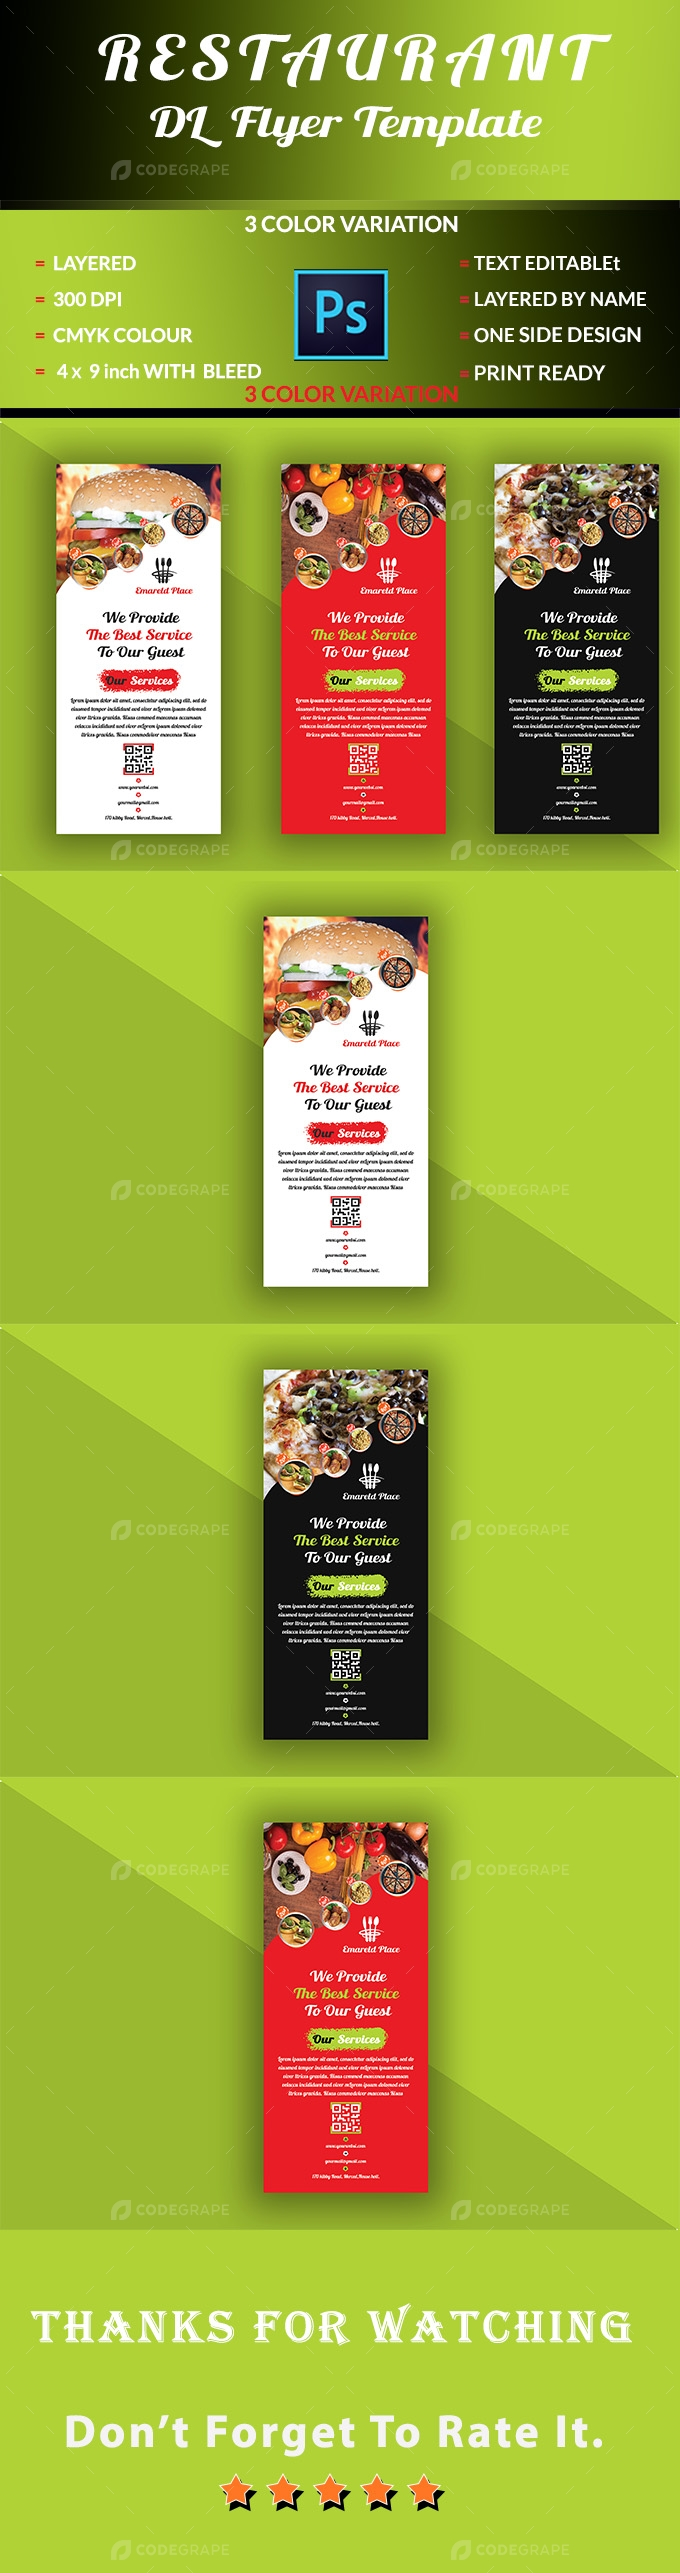 Restaurant DL Flyer Template